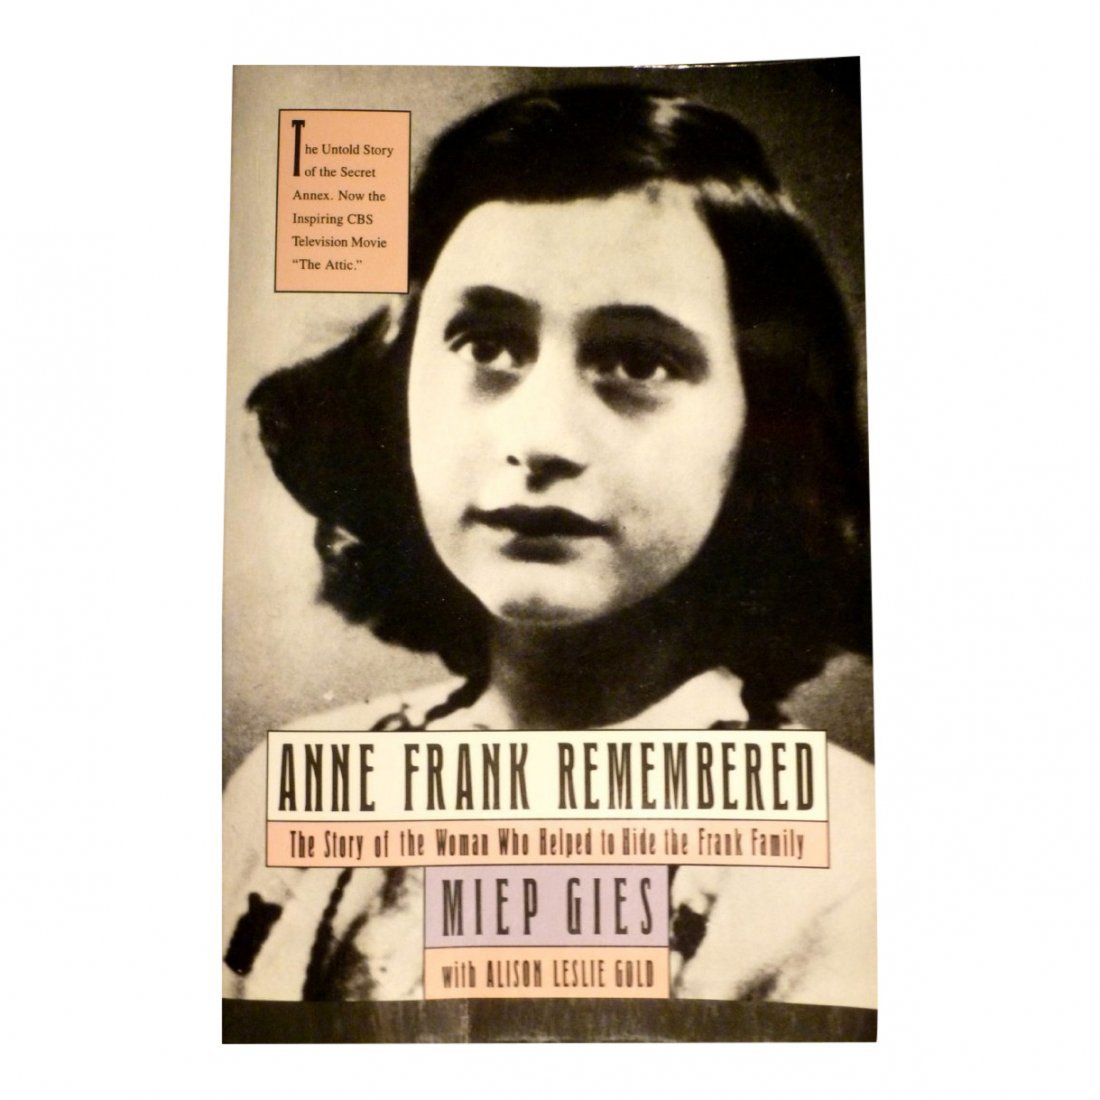 Miep Gies: Anne Frank Remembered - Signed